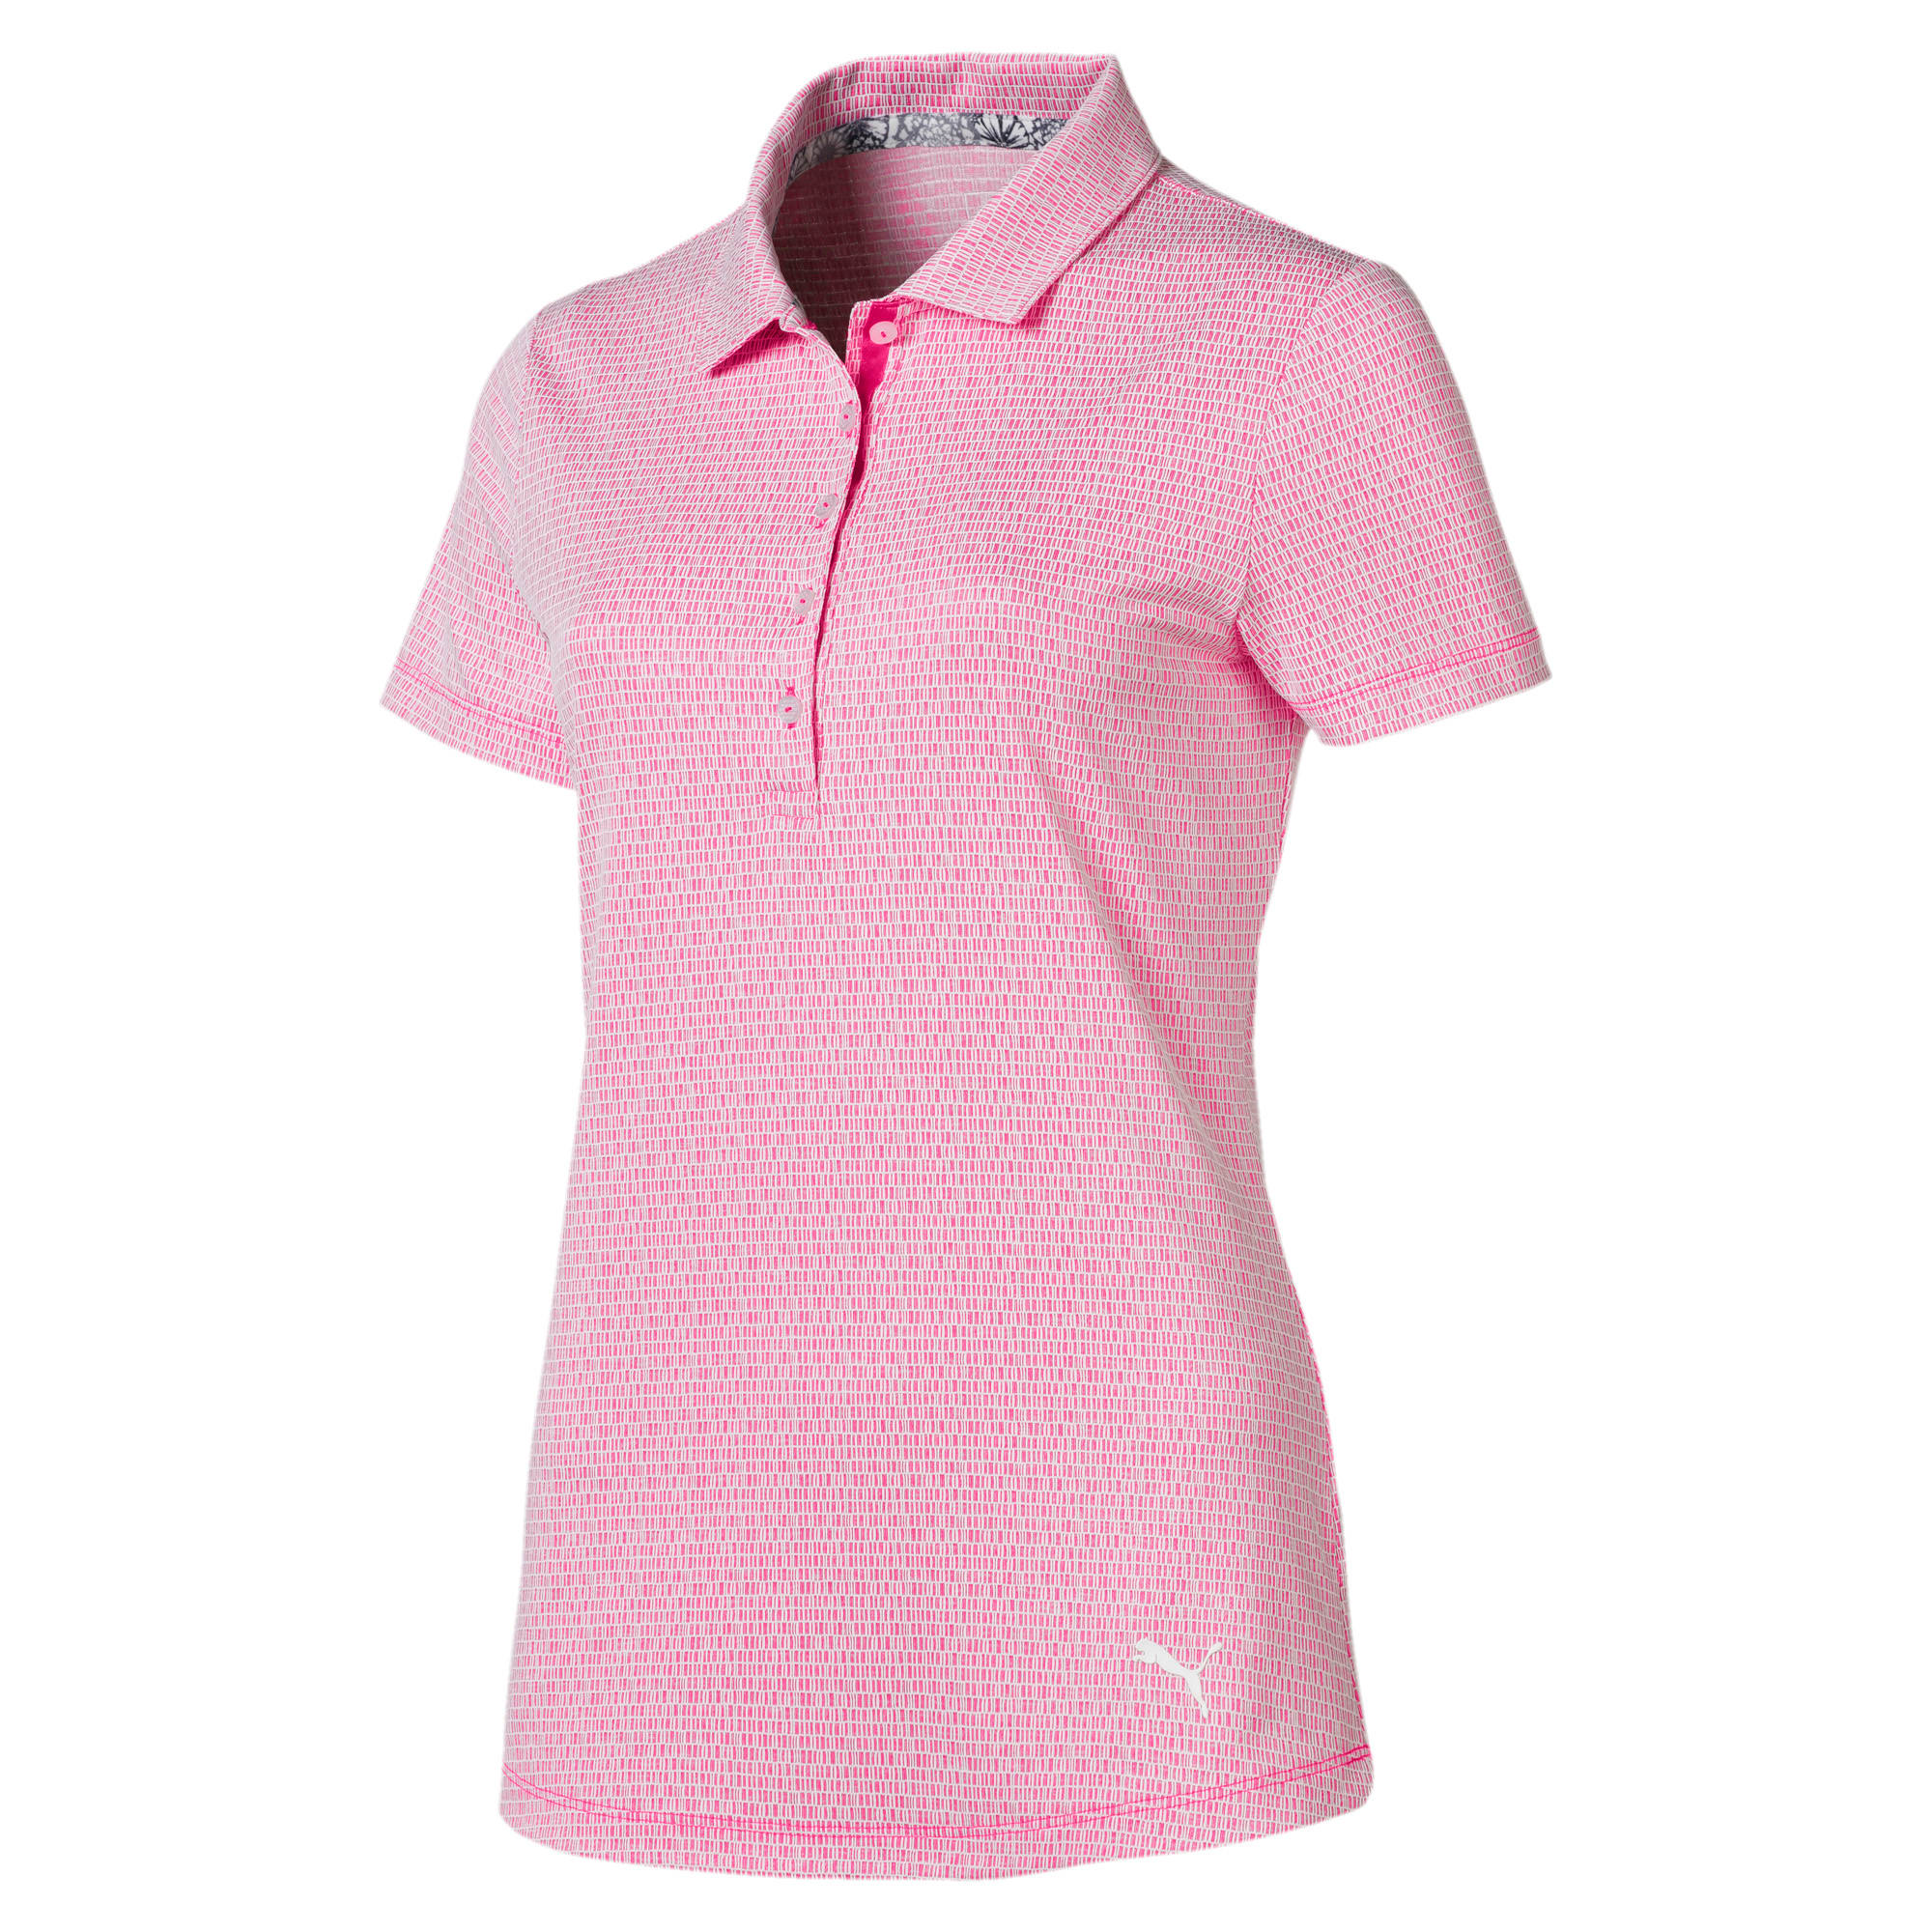 Thumbnail 4 of Swift Women's Golf Polo, Fuchsia Purple-Bright White, medium